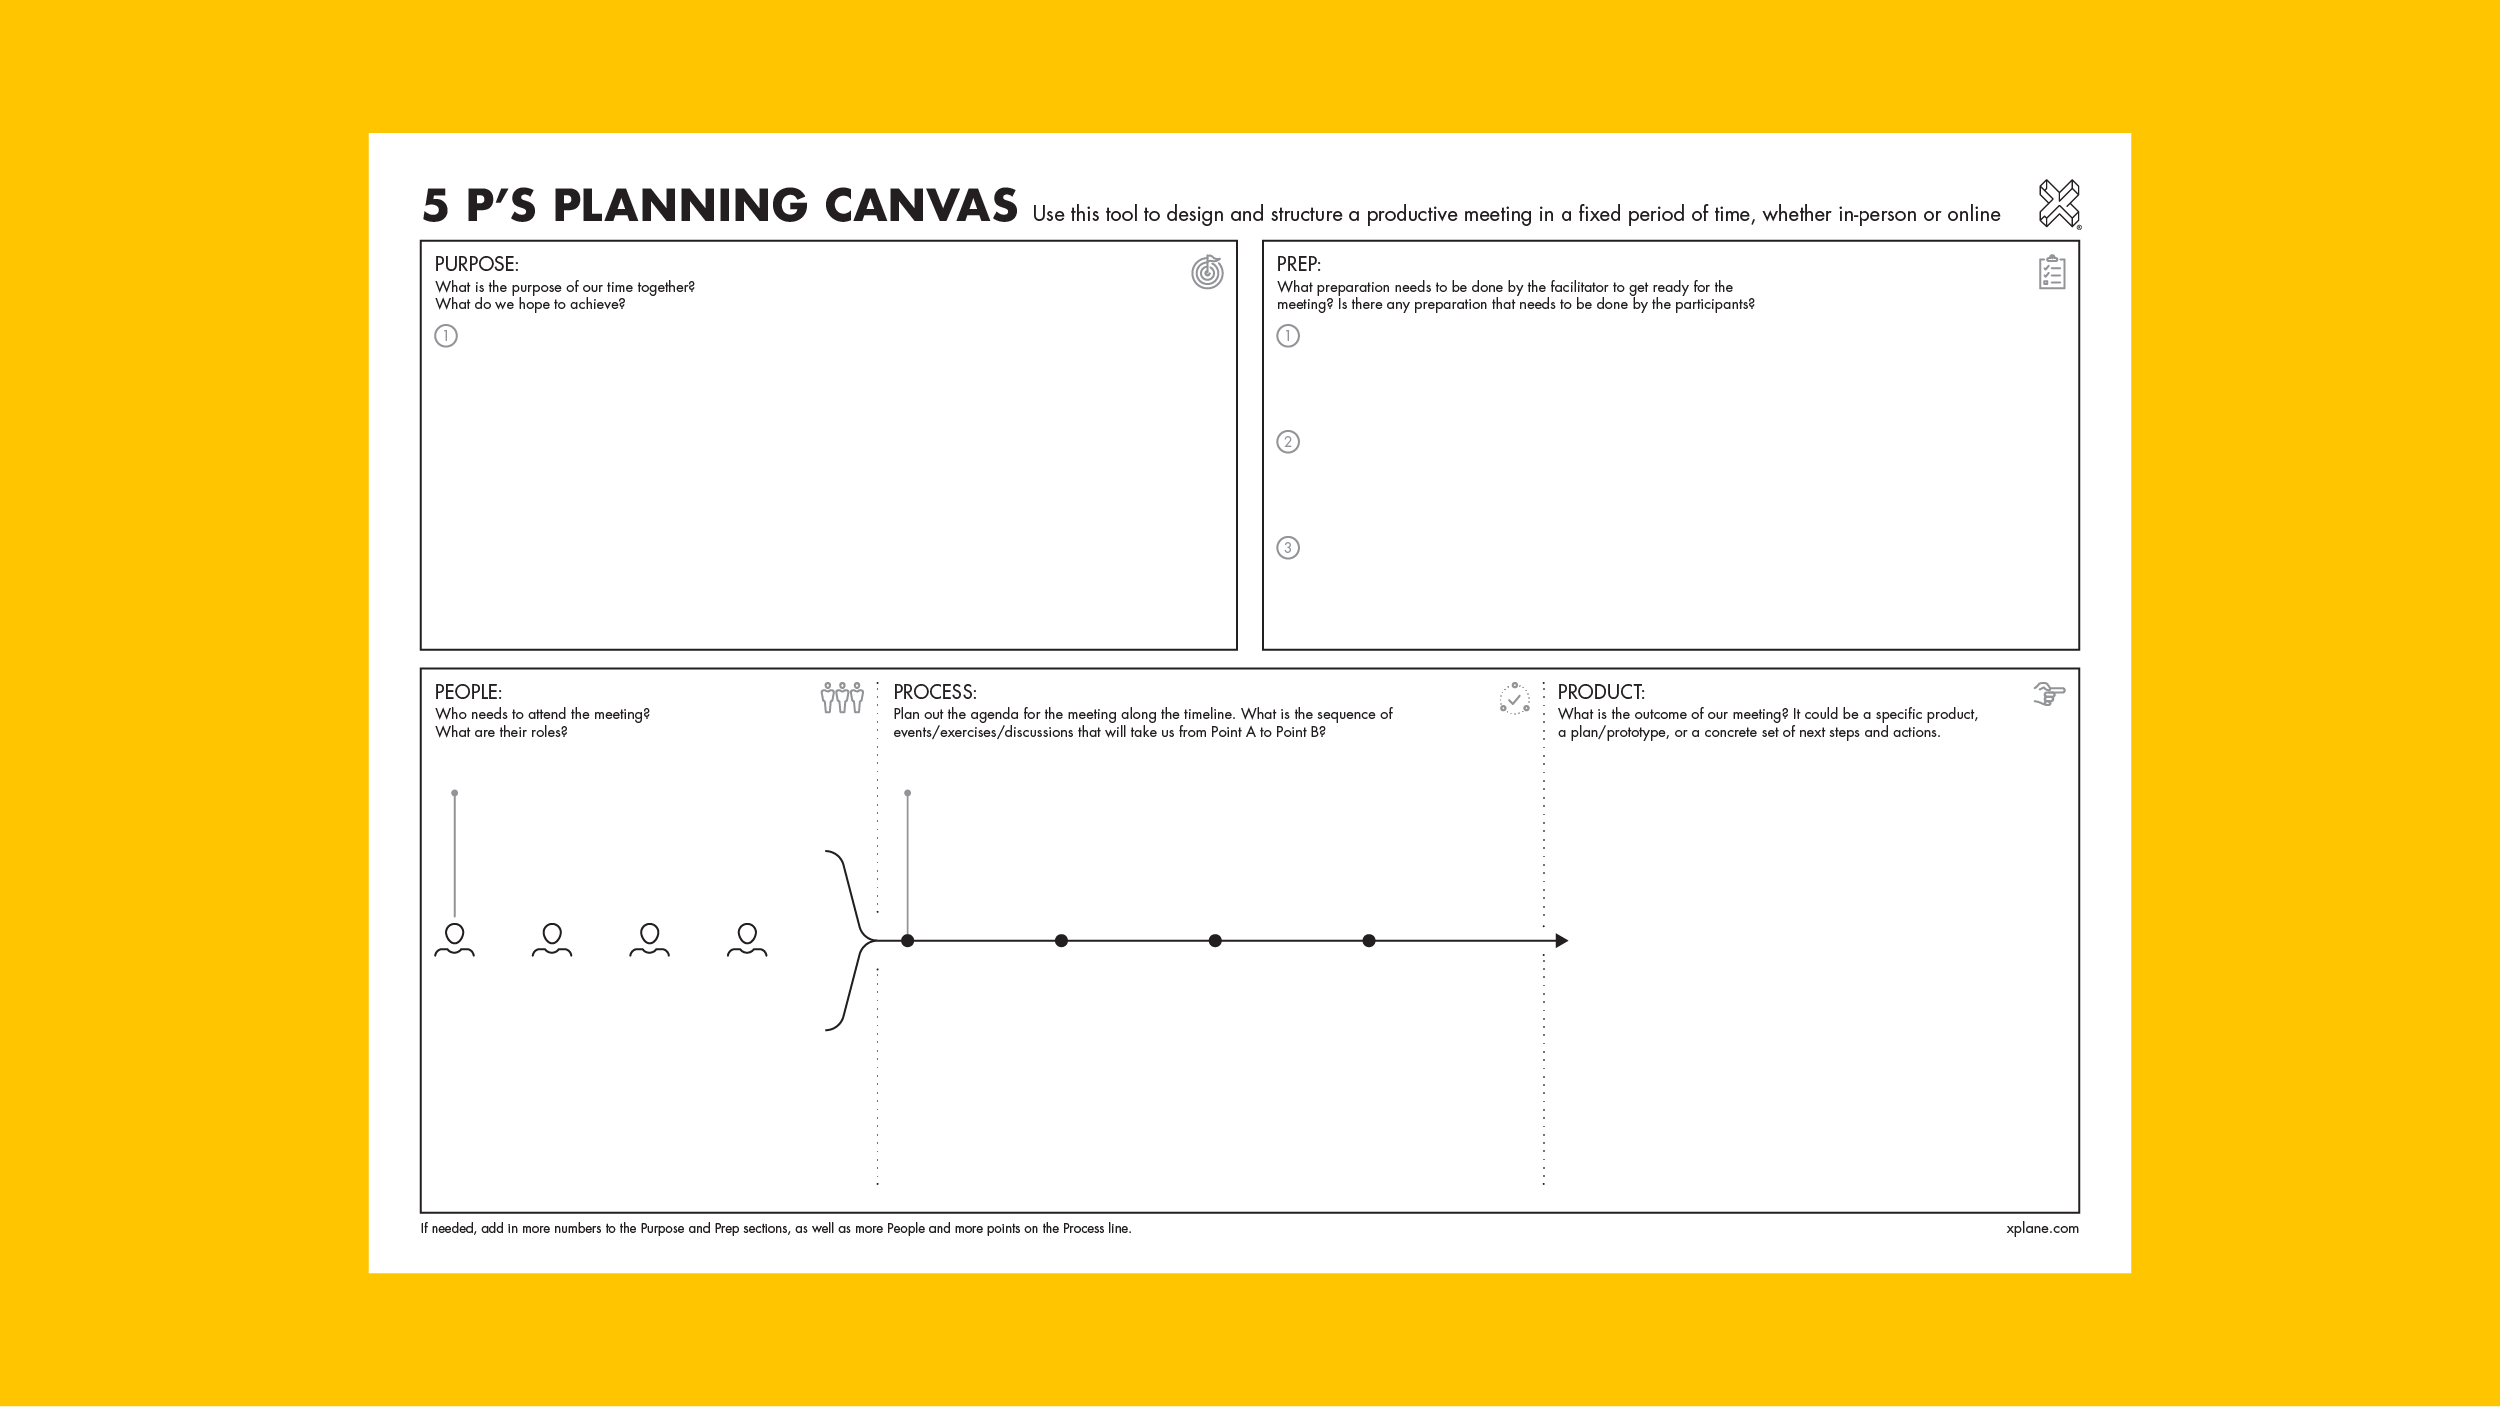 5 P's Planning Canvas